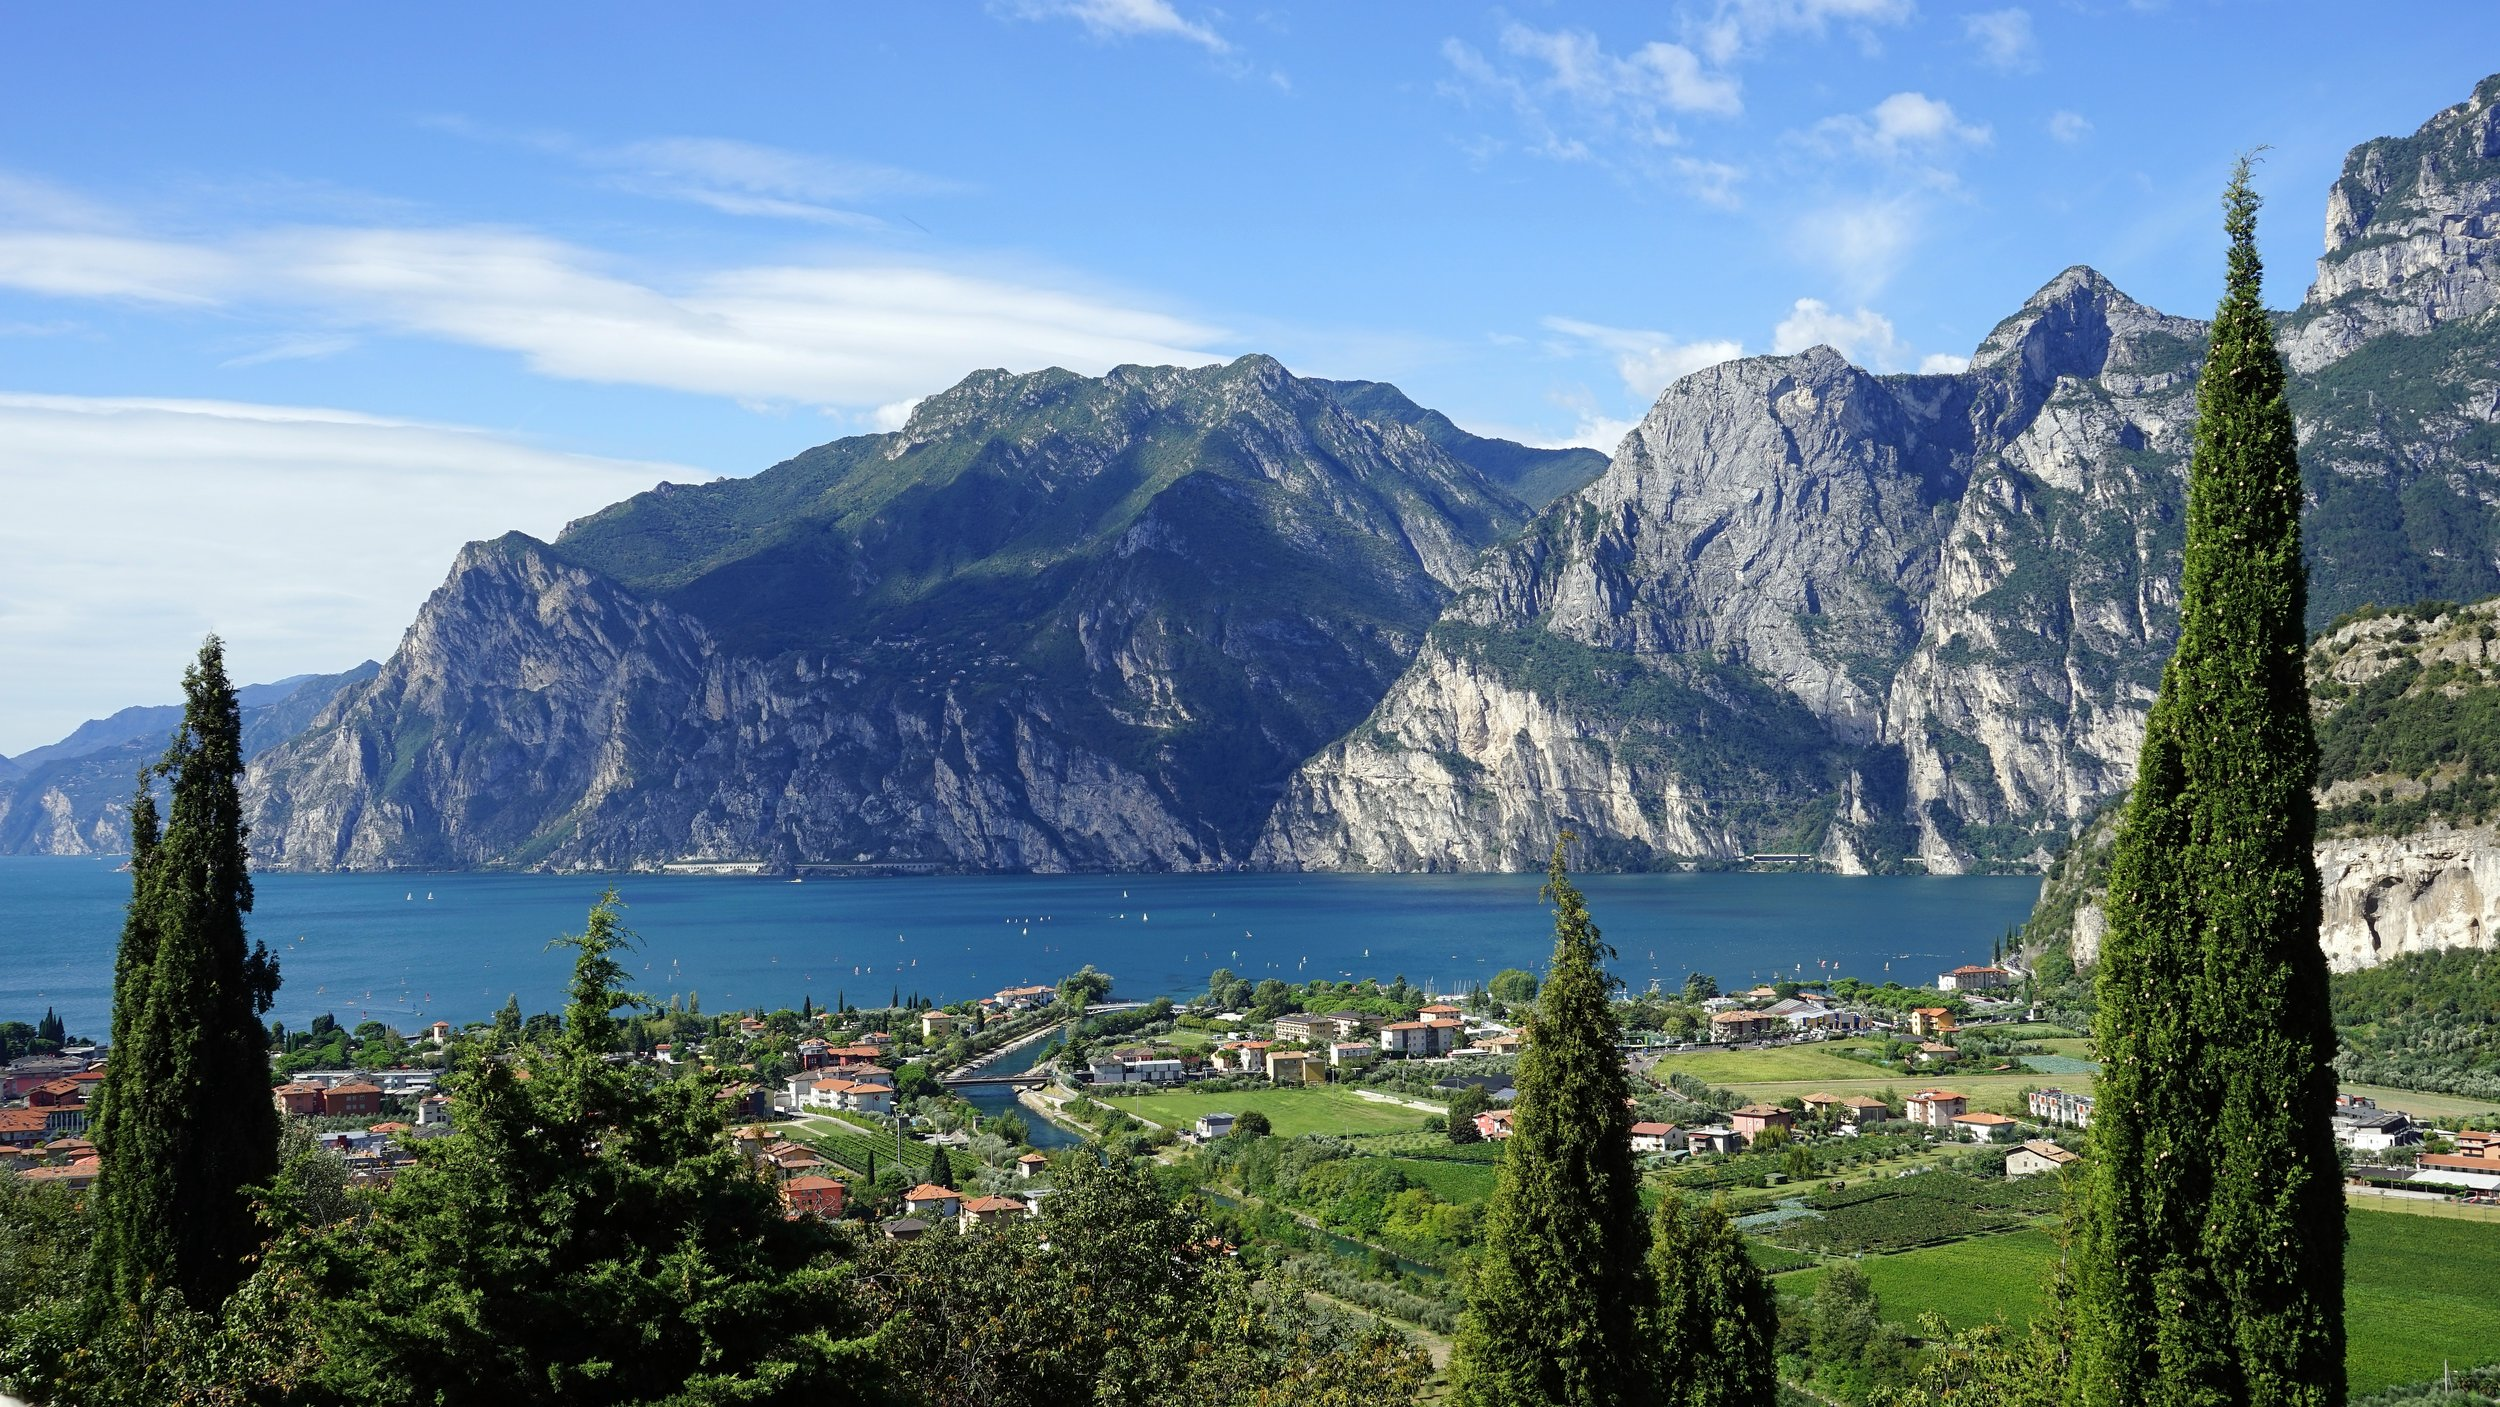 Lake Garda - Italy's biggest lake and home to some amazing landscapes.